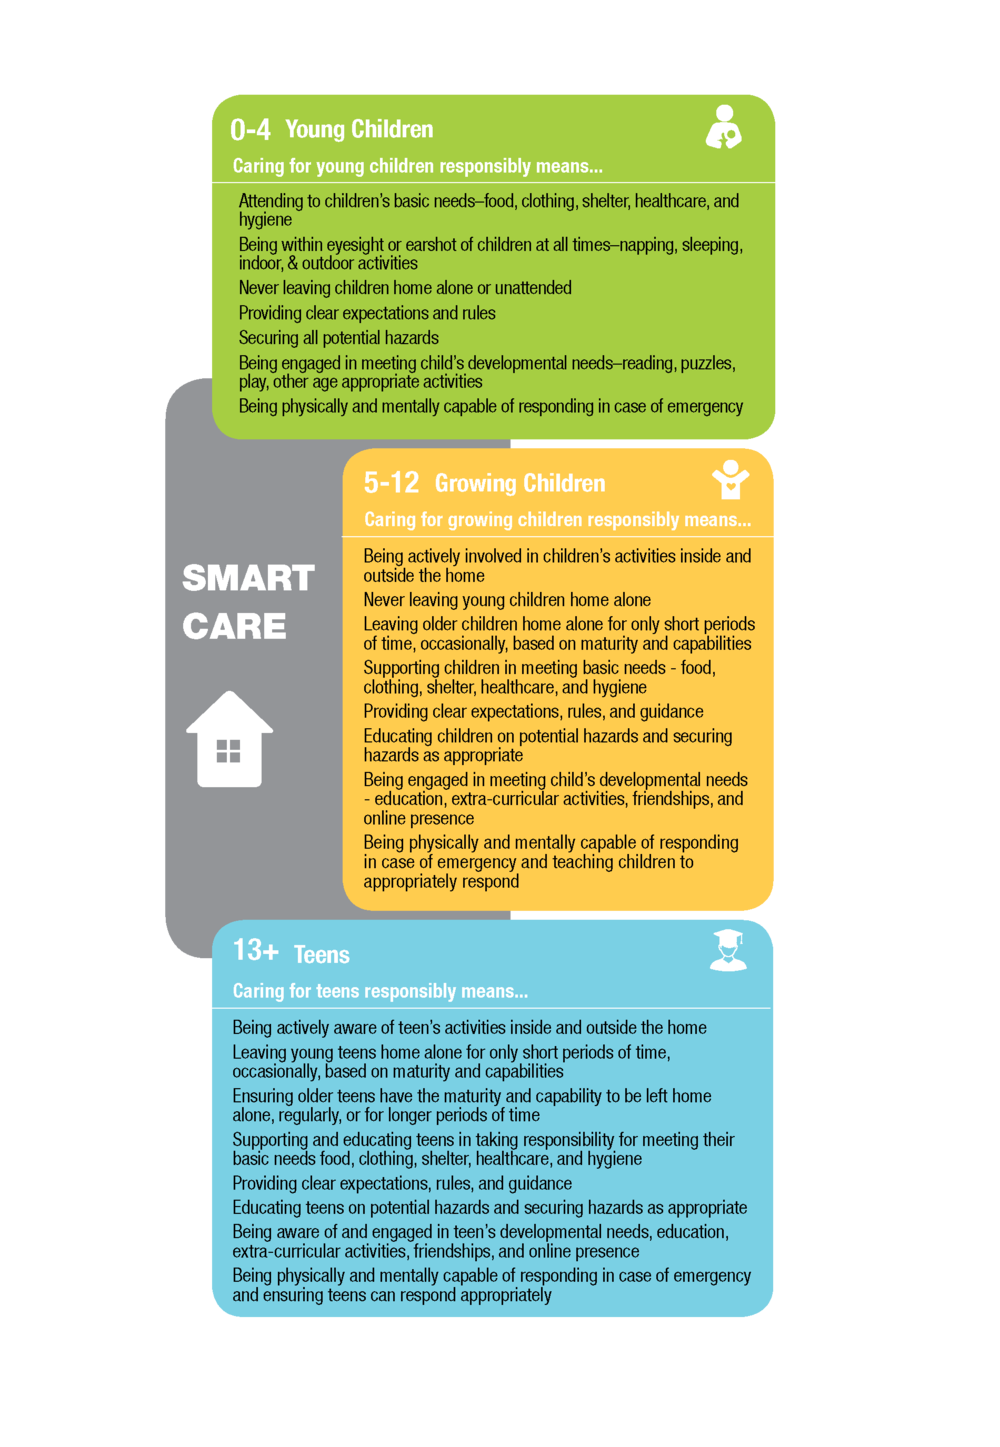 SmartCare_Graphic_SMALL.png